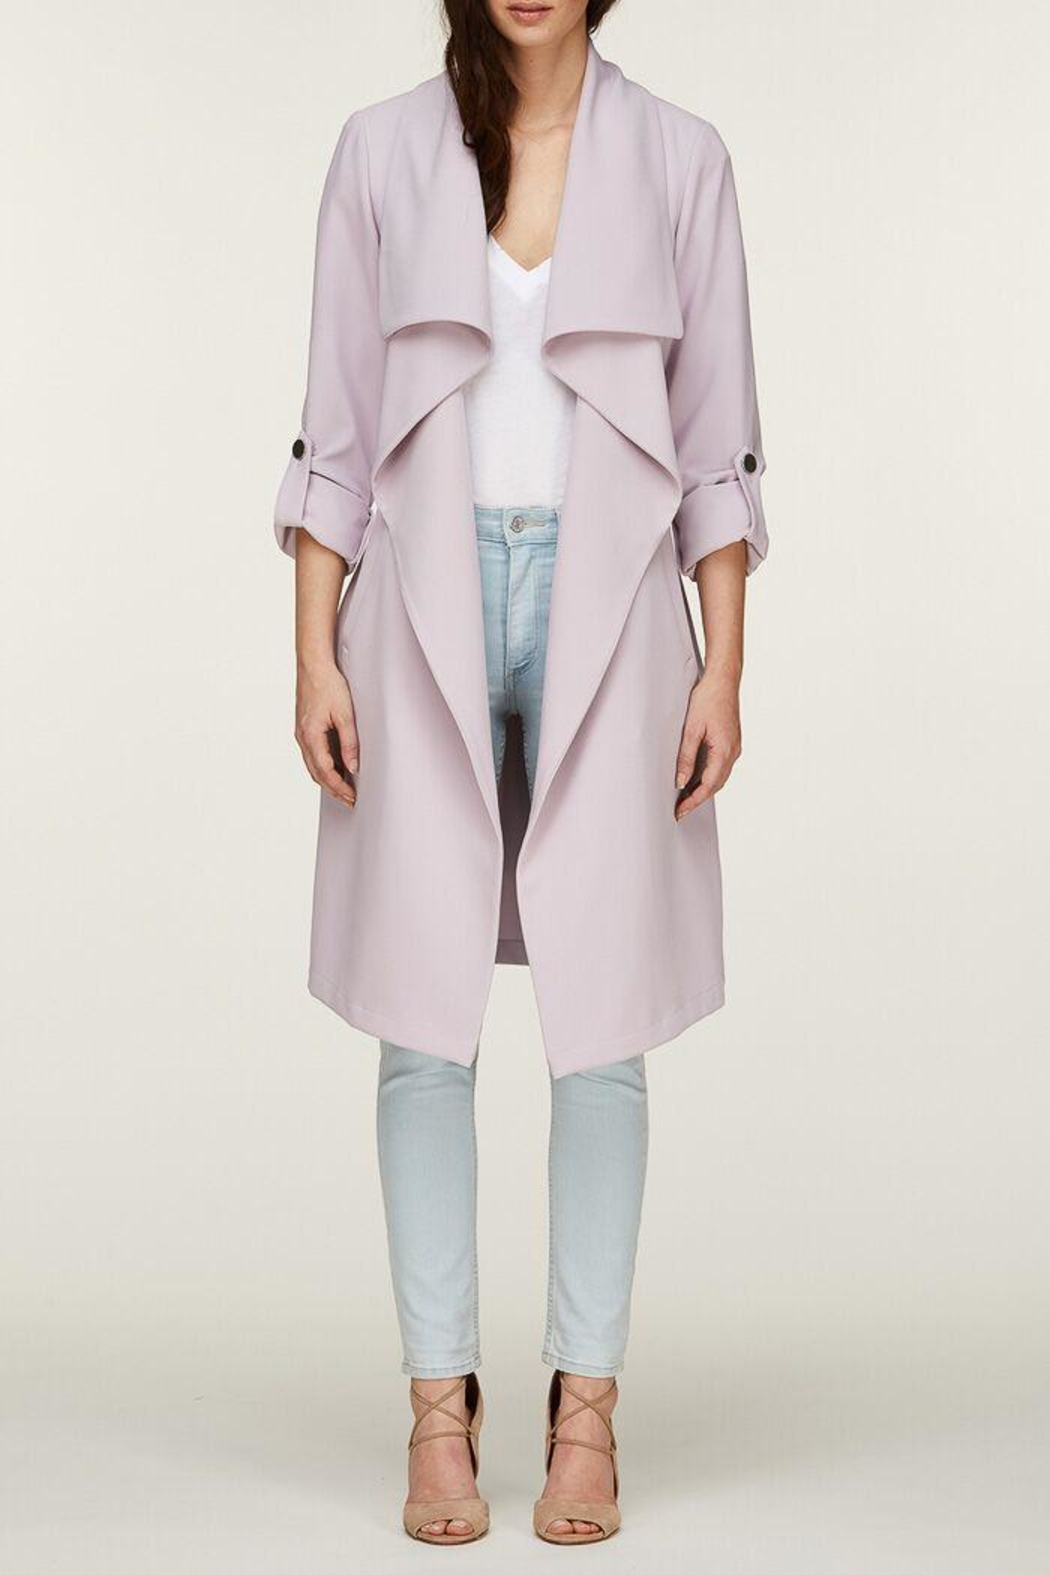 Soia & Kyo Ornella Draped Trench - Main Image